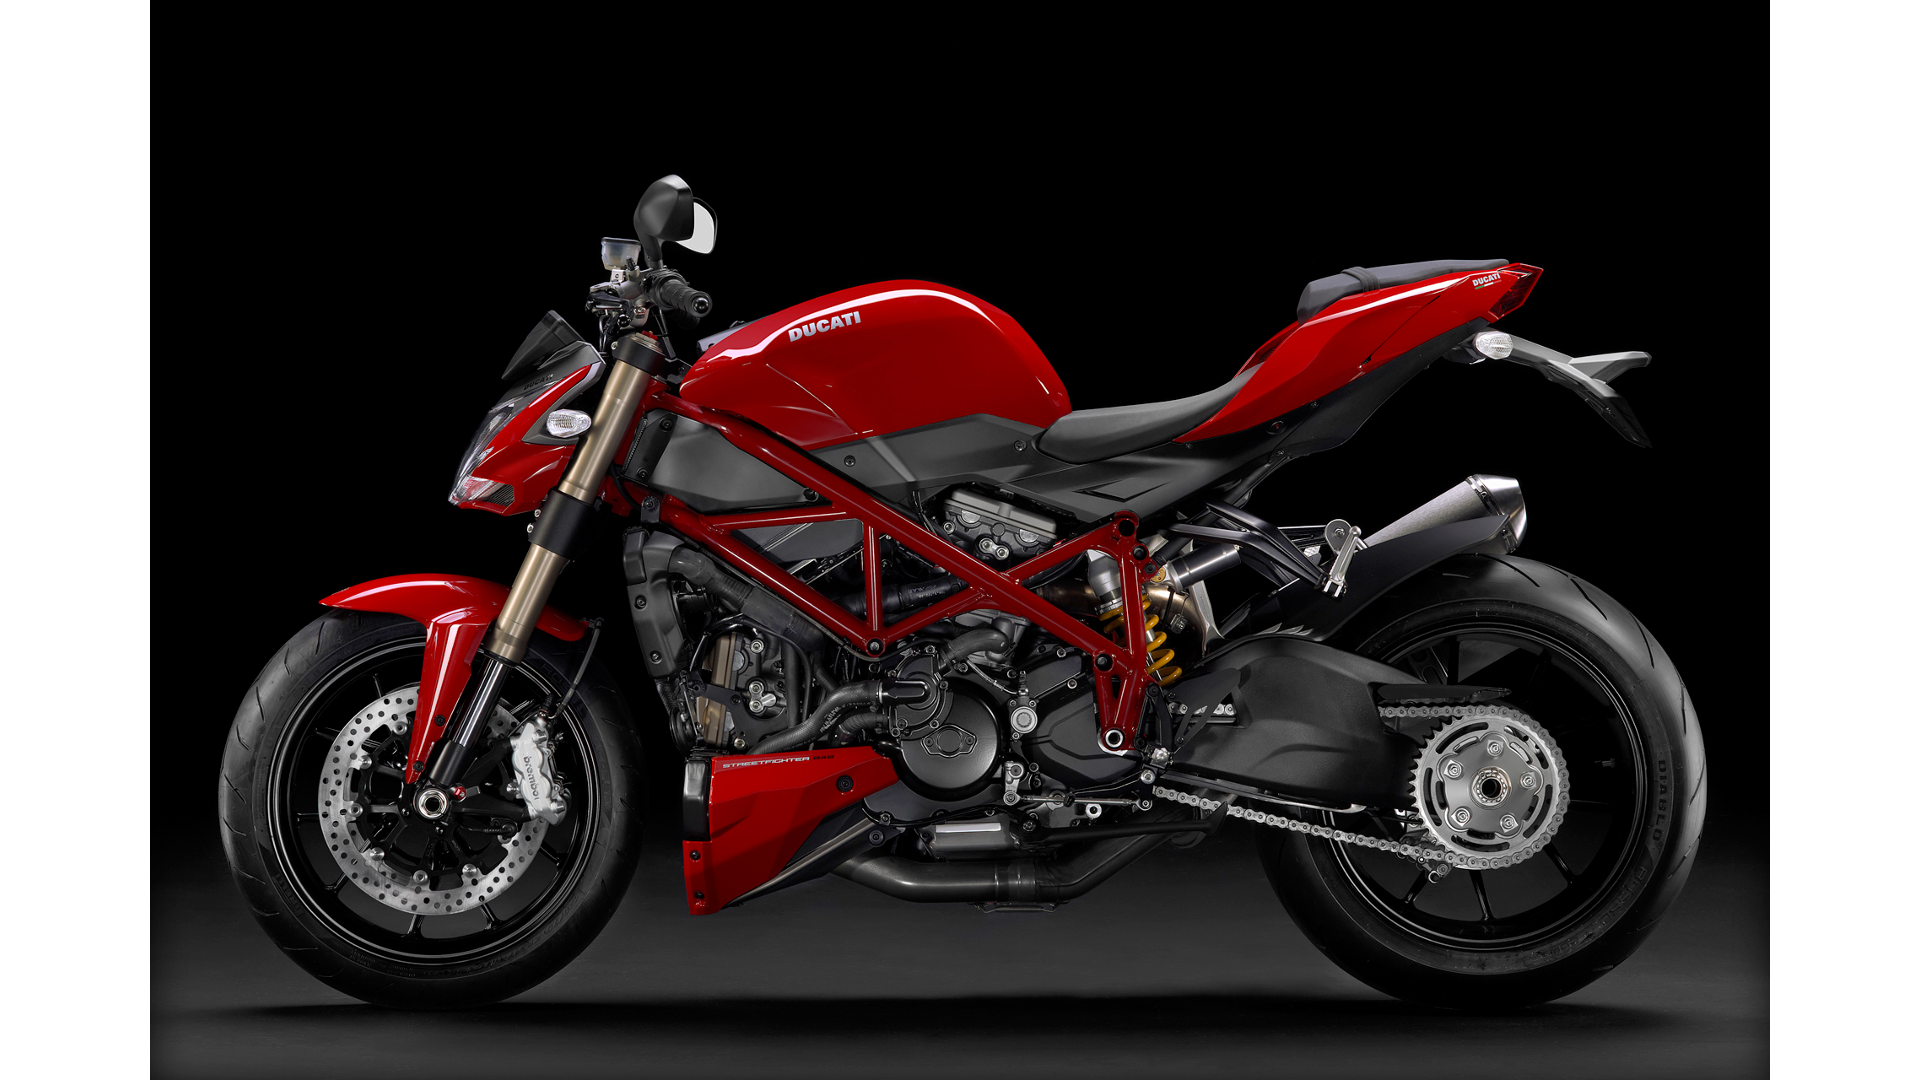 ... Ducati Streetfighter 848 Wallpapers #26391 ...